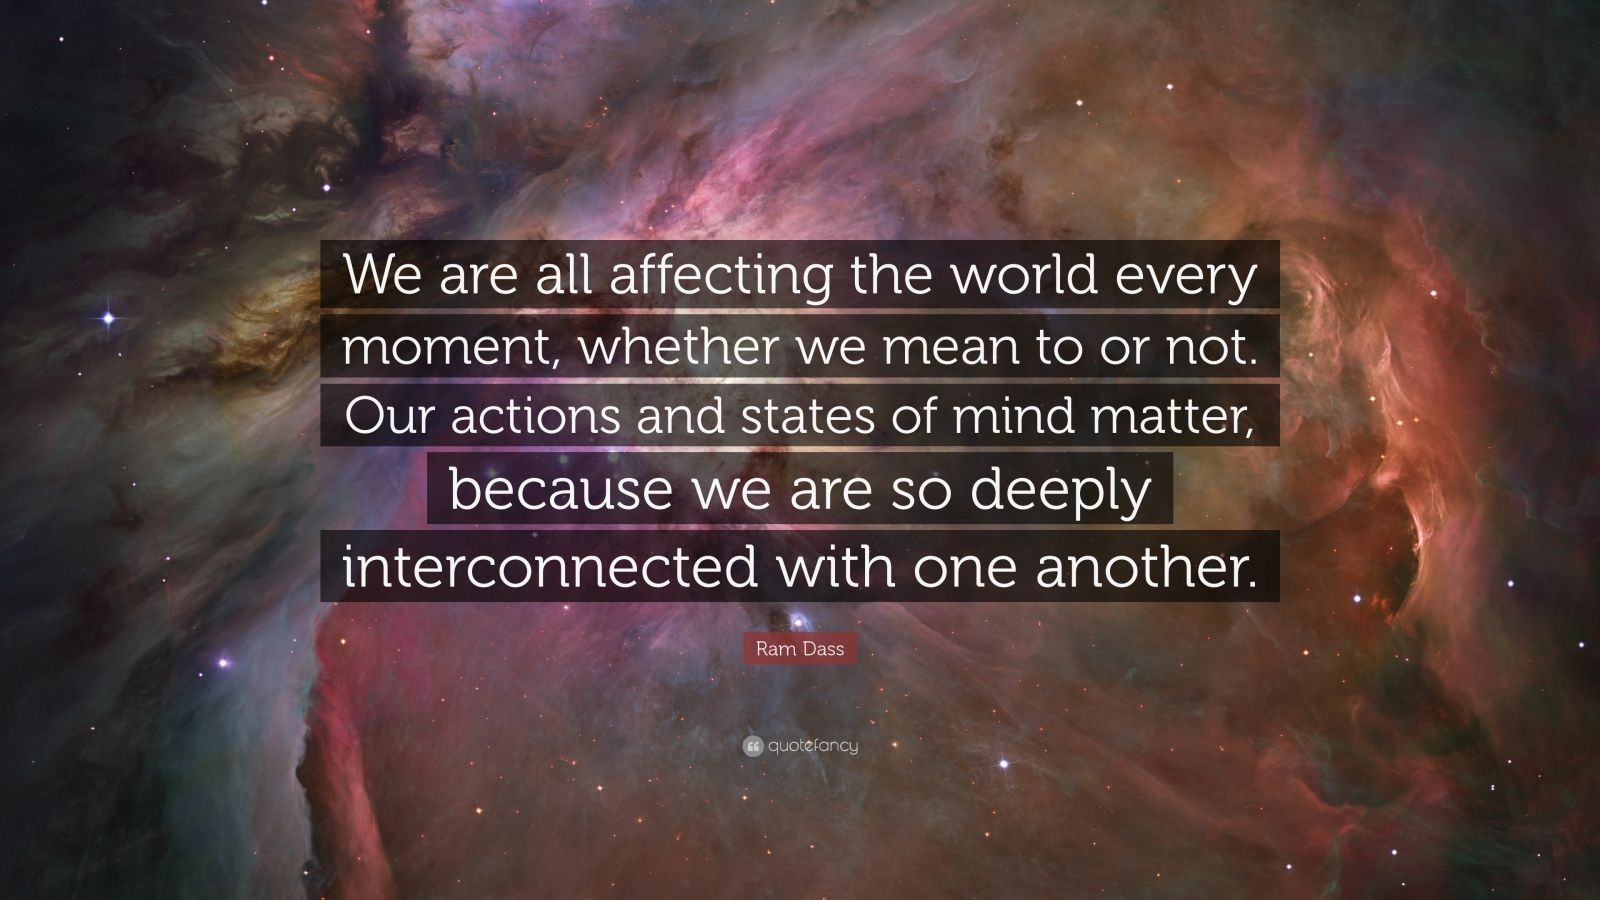 """Ram Dass Quote: """"We are all affecting the world every moment, whether we mean to or not. Our actions and states of mind matter, because we are so deeply interconnected with one another."""""""